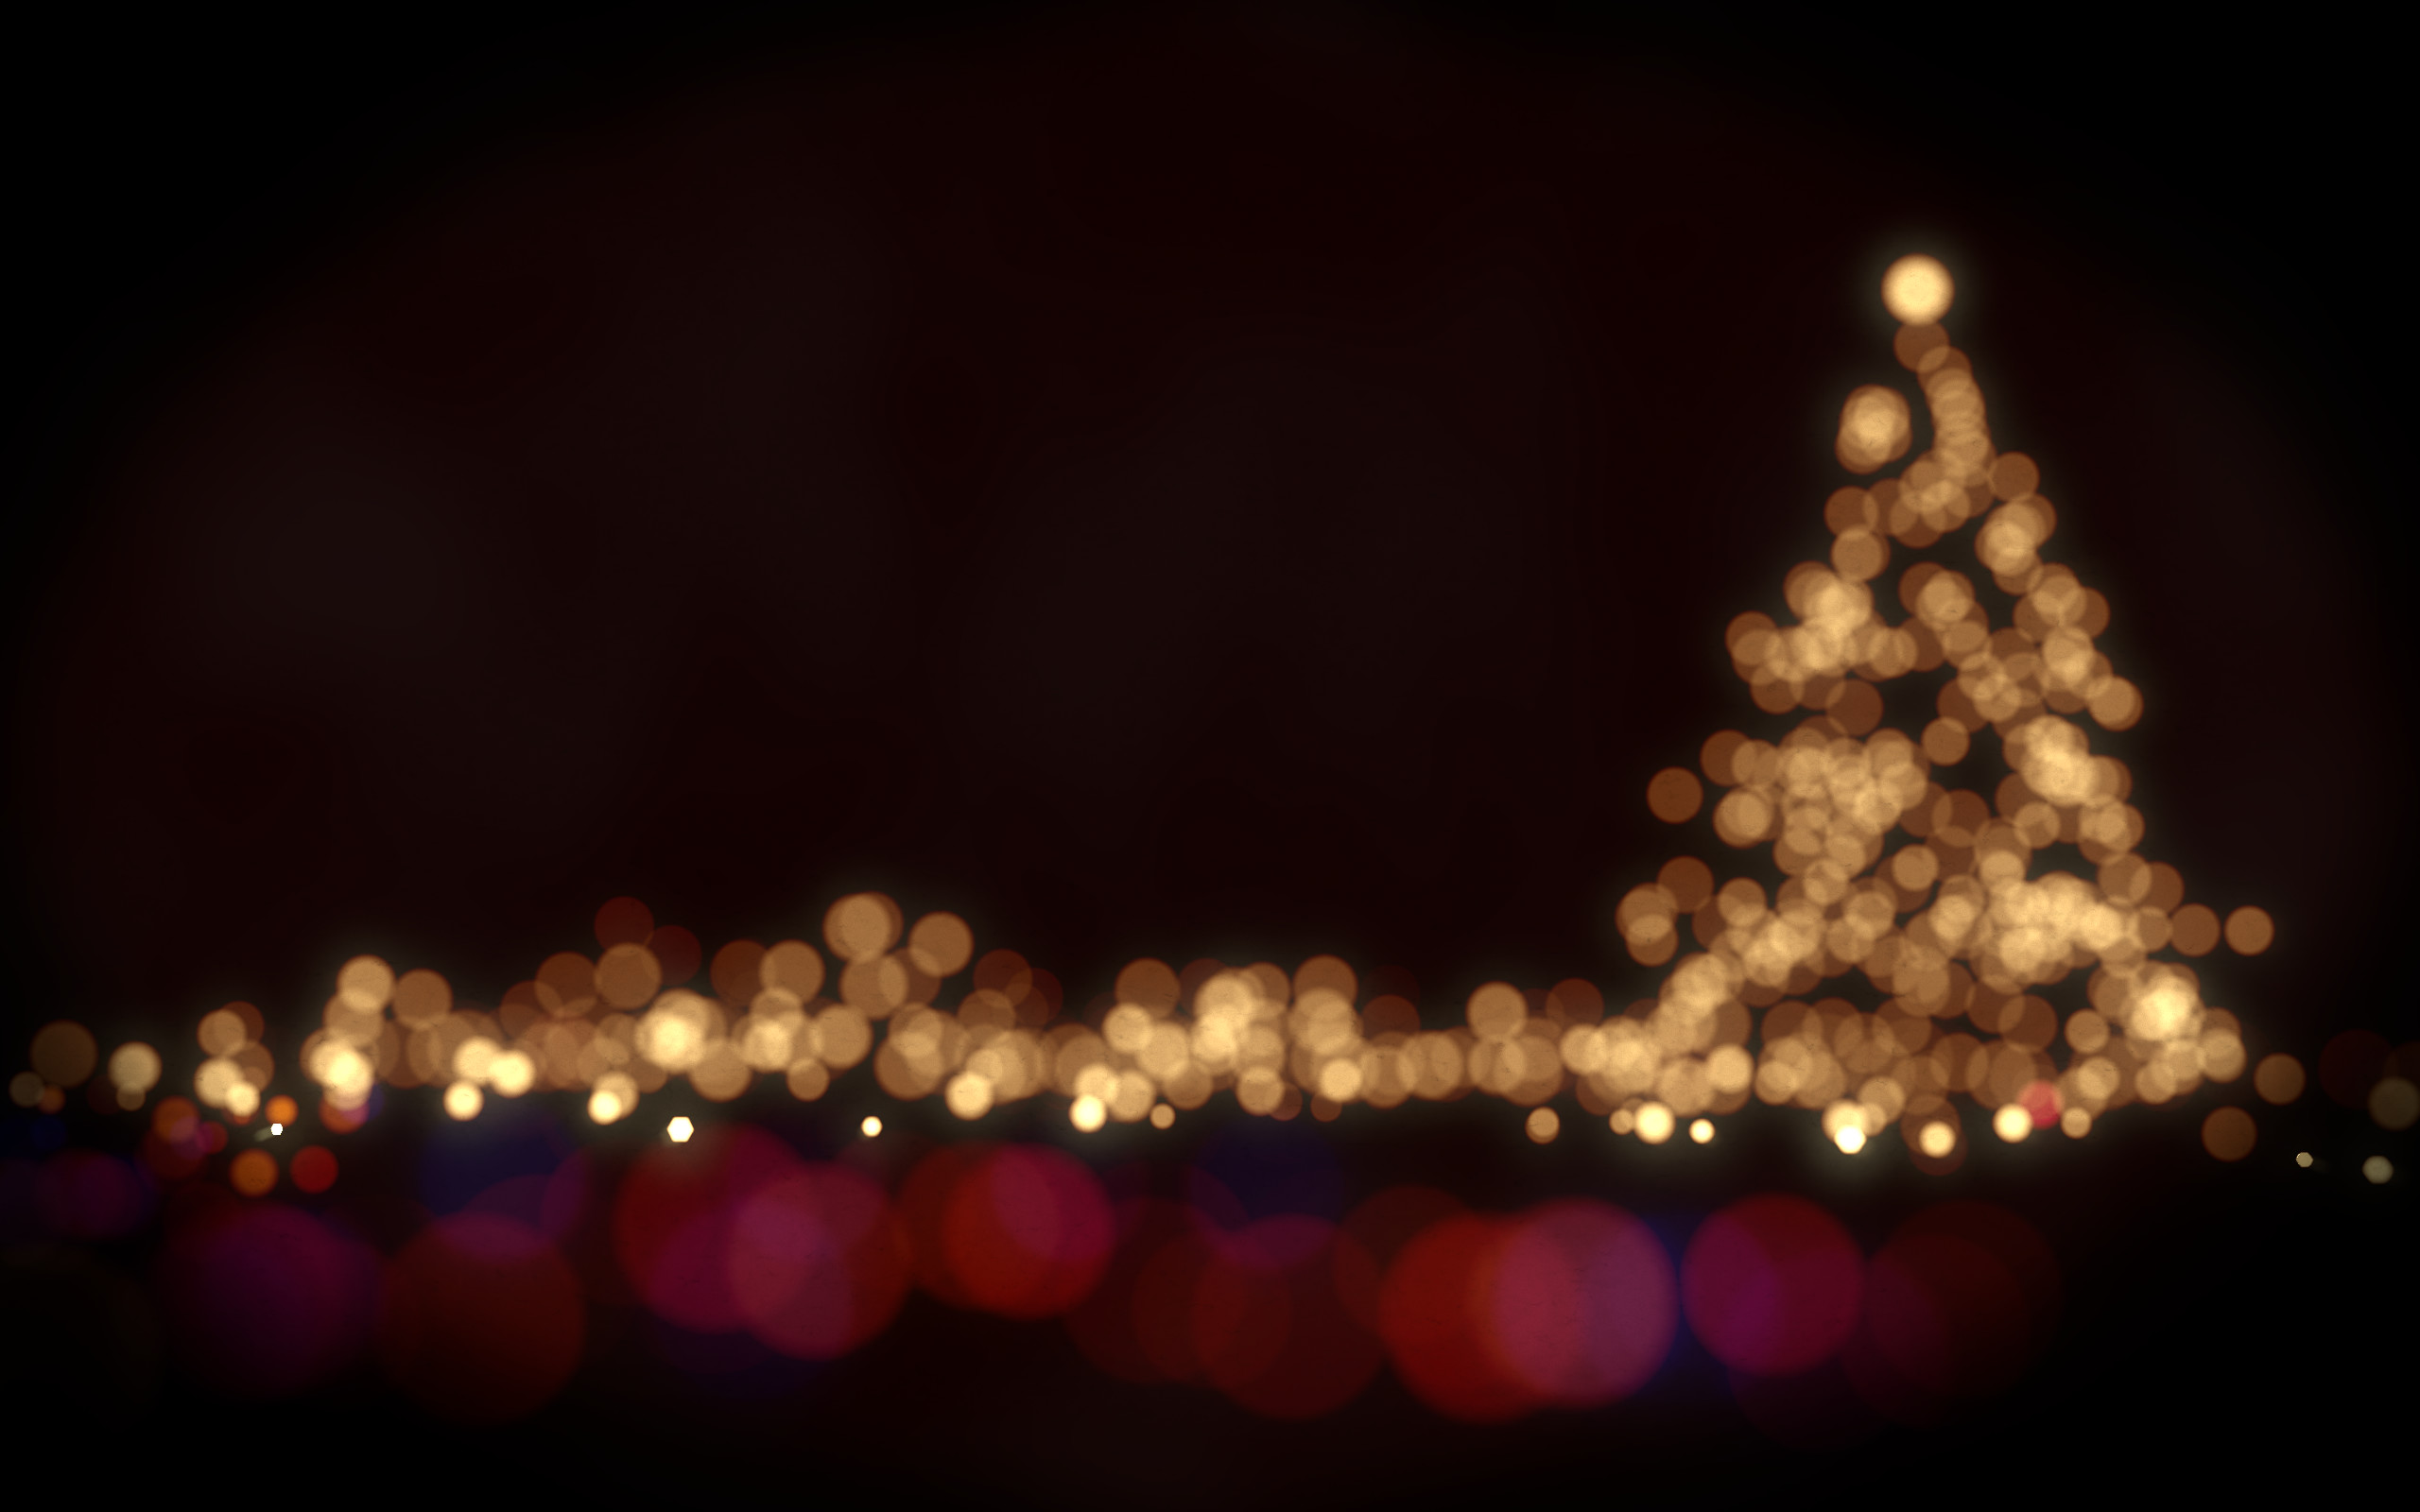 2560x1600 Christmas-Background